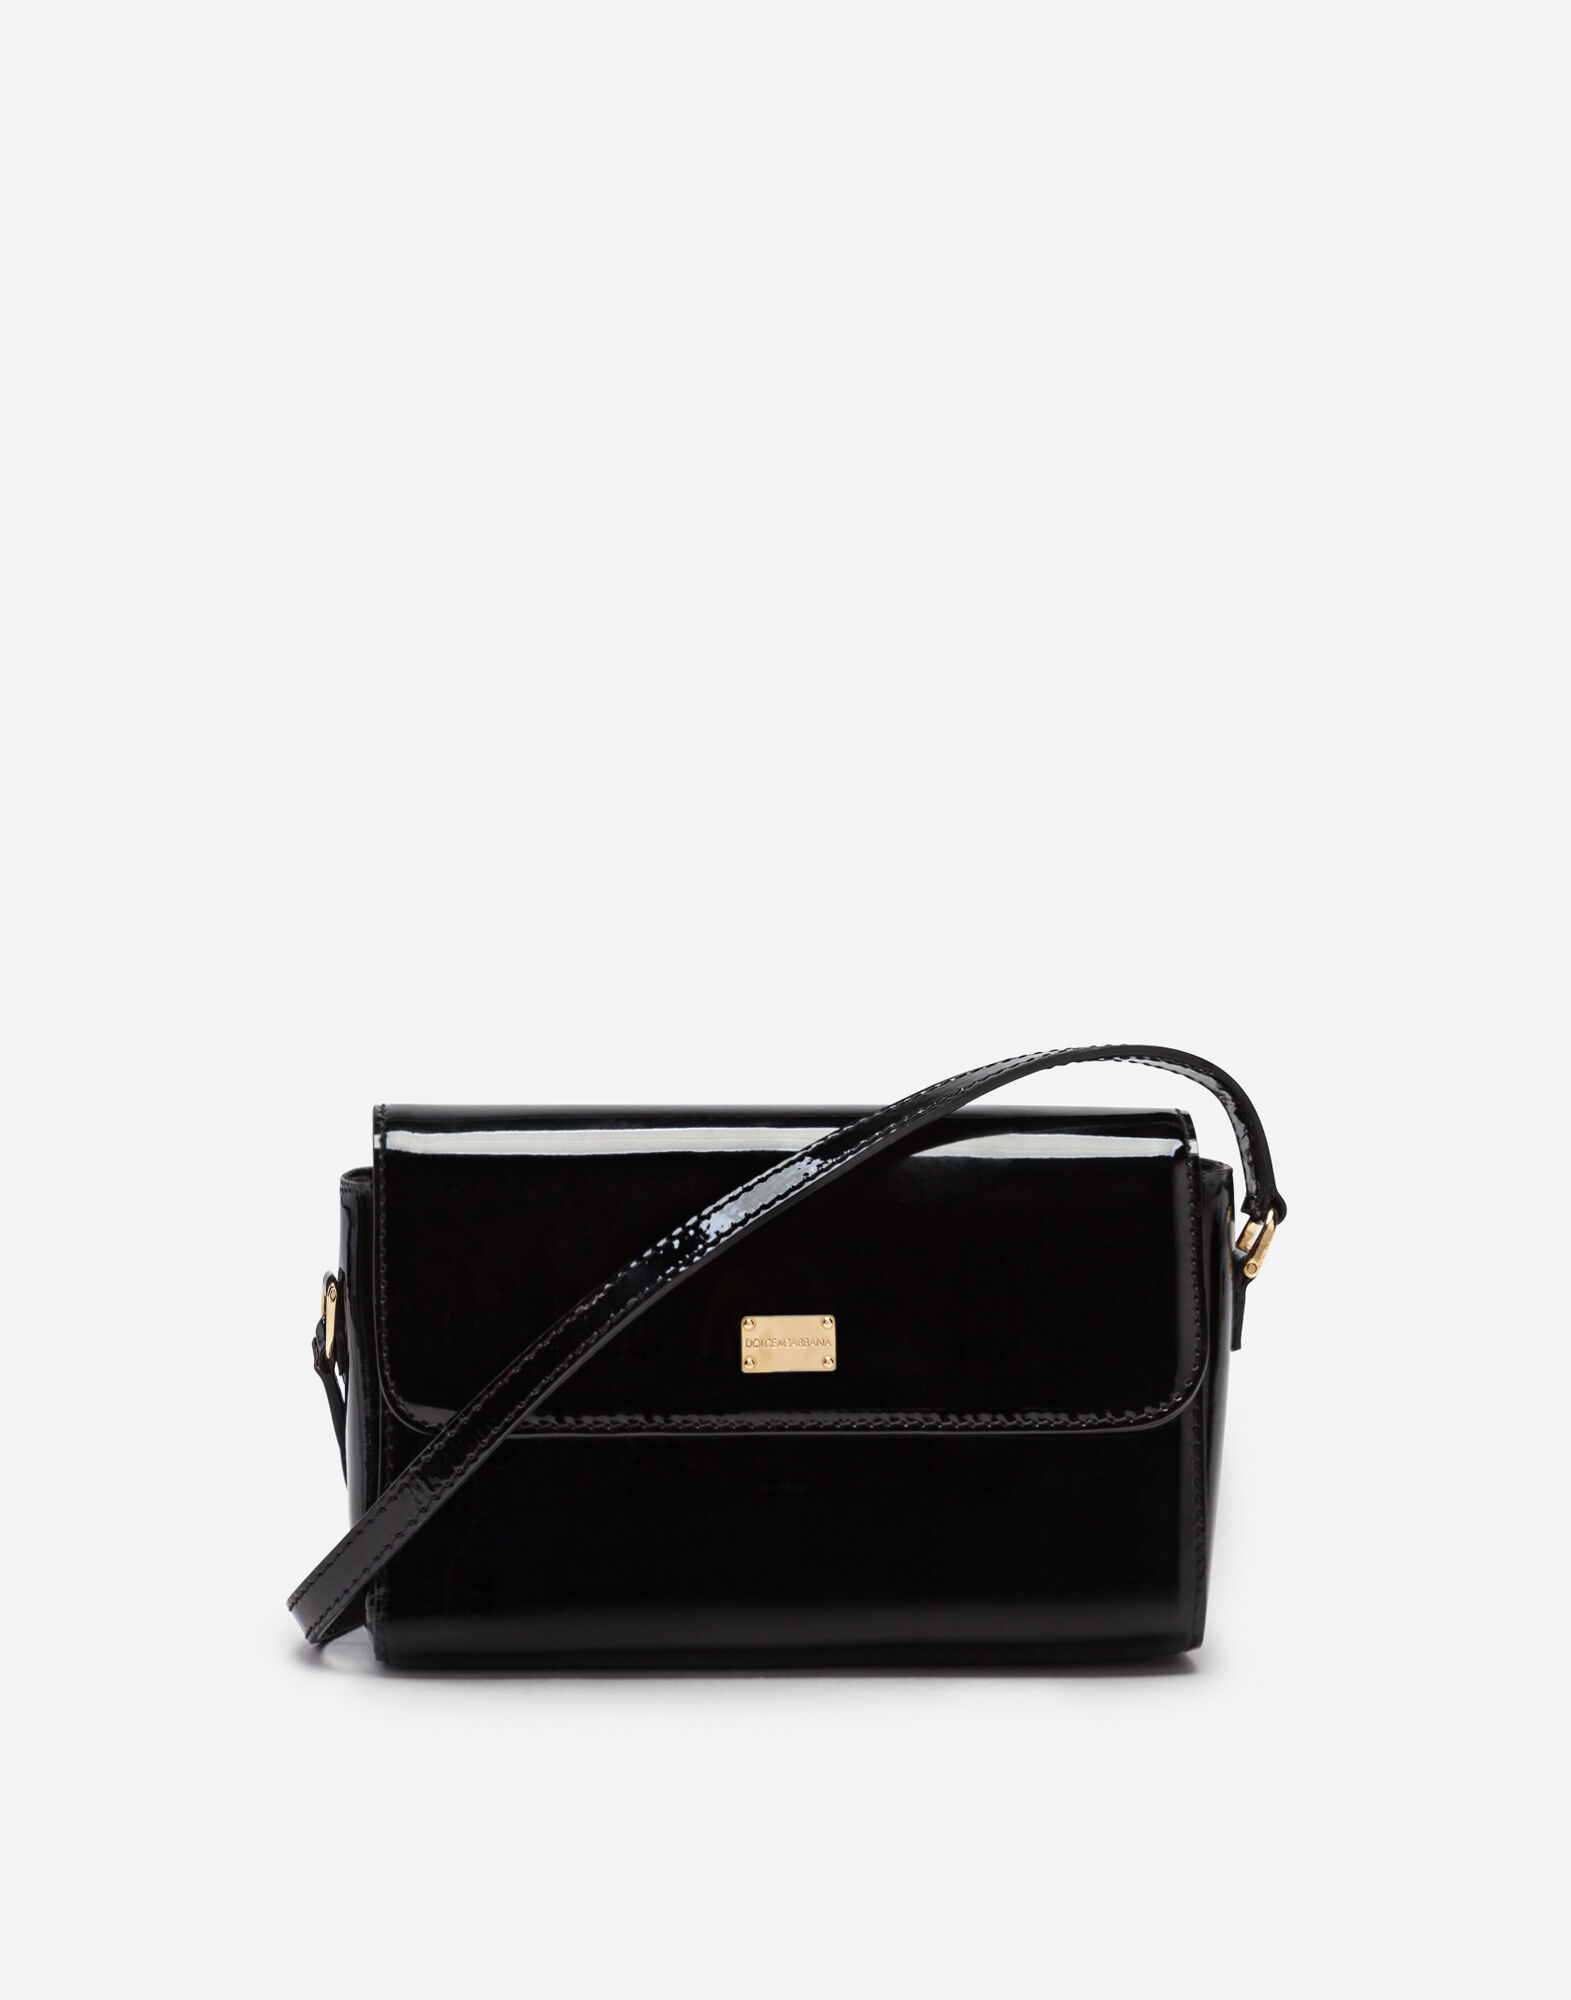 PATENT LEATHER SHOULDER BAG